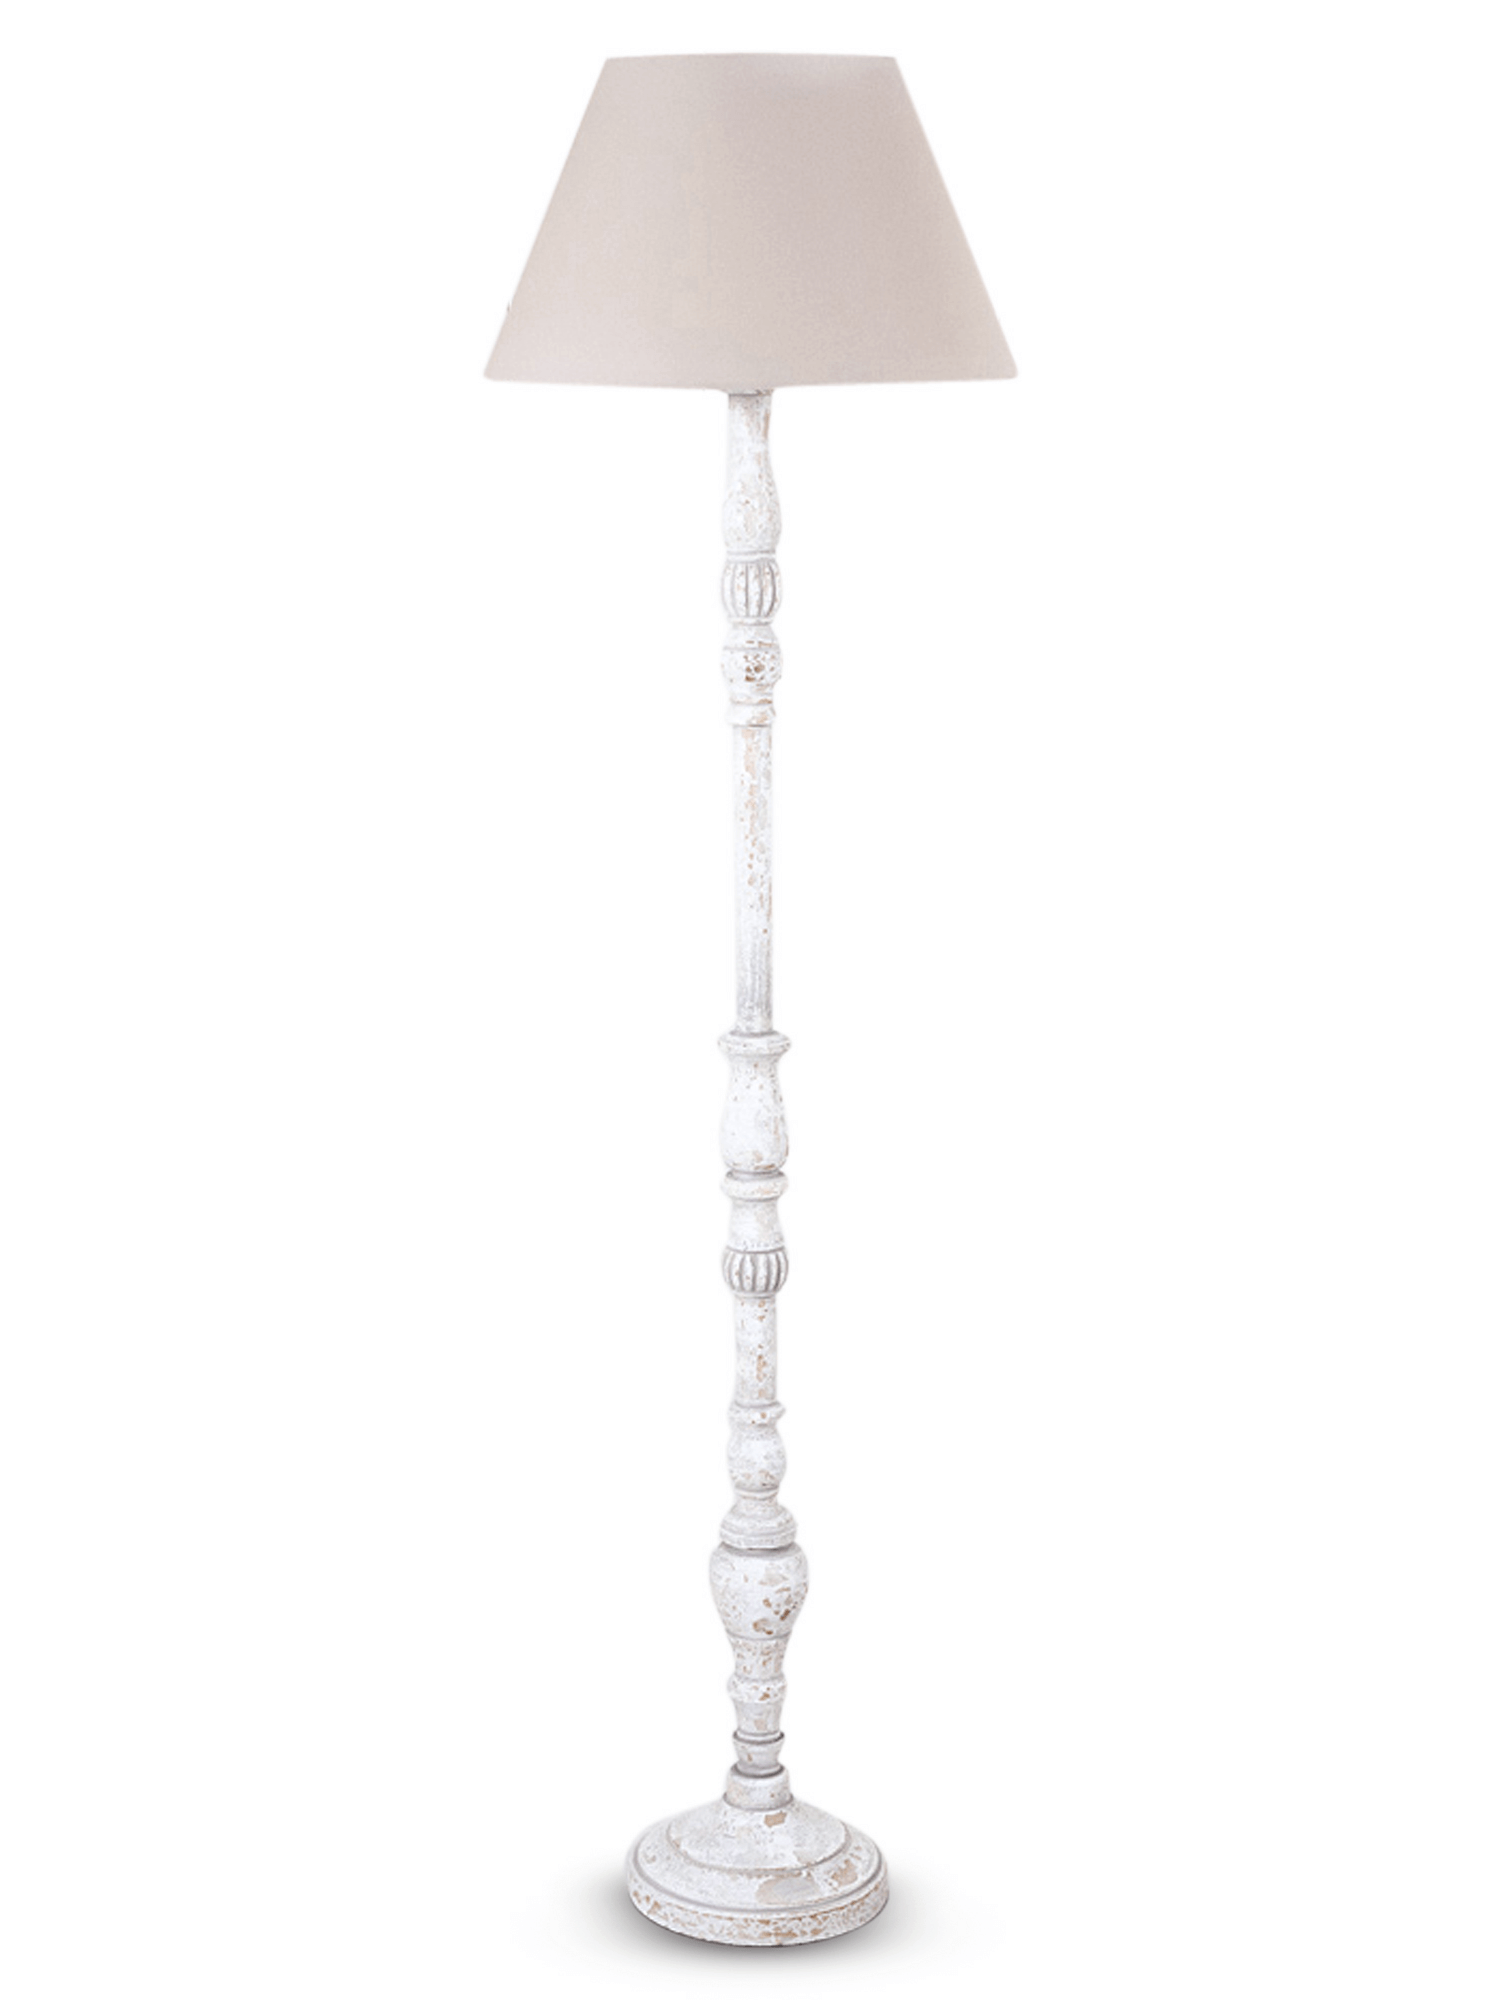 Floor Lamp Wooden White Wooden Floor Lamp Feeling Of Symmetry And